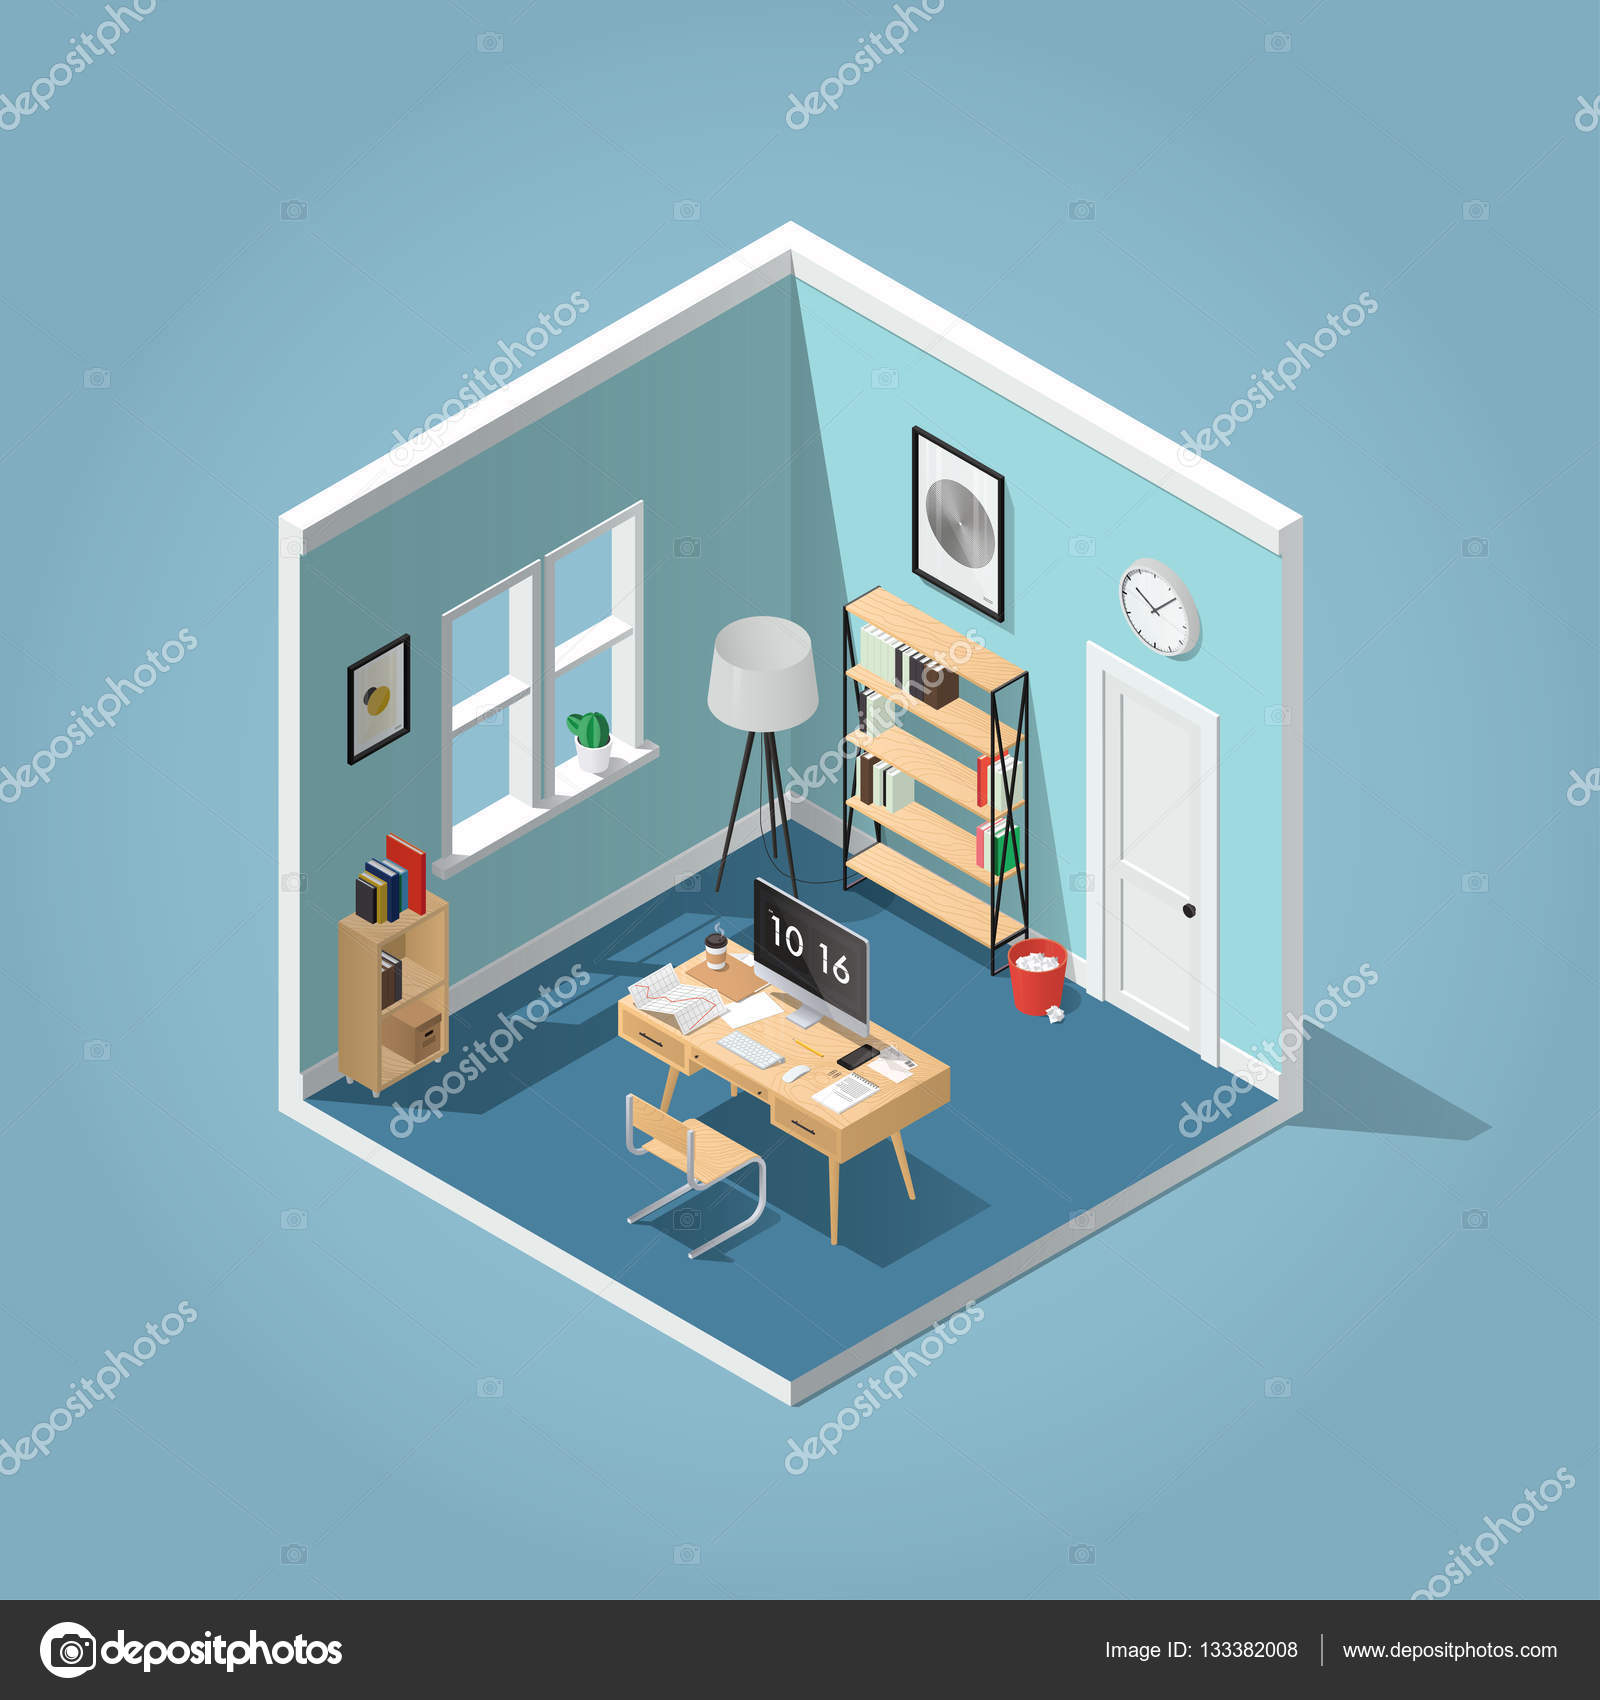 Download - Isometric home office — Stock Illustration #133382008